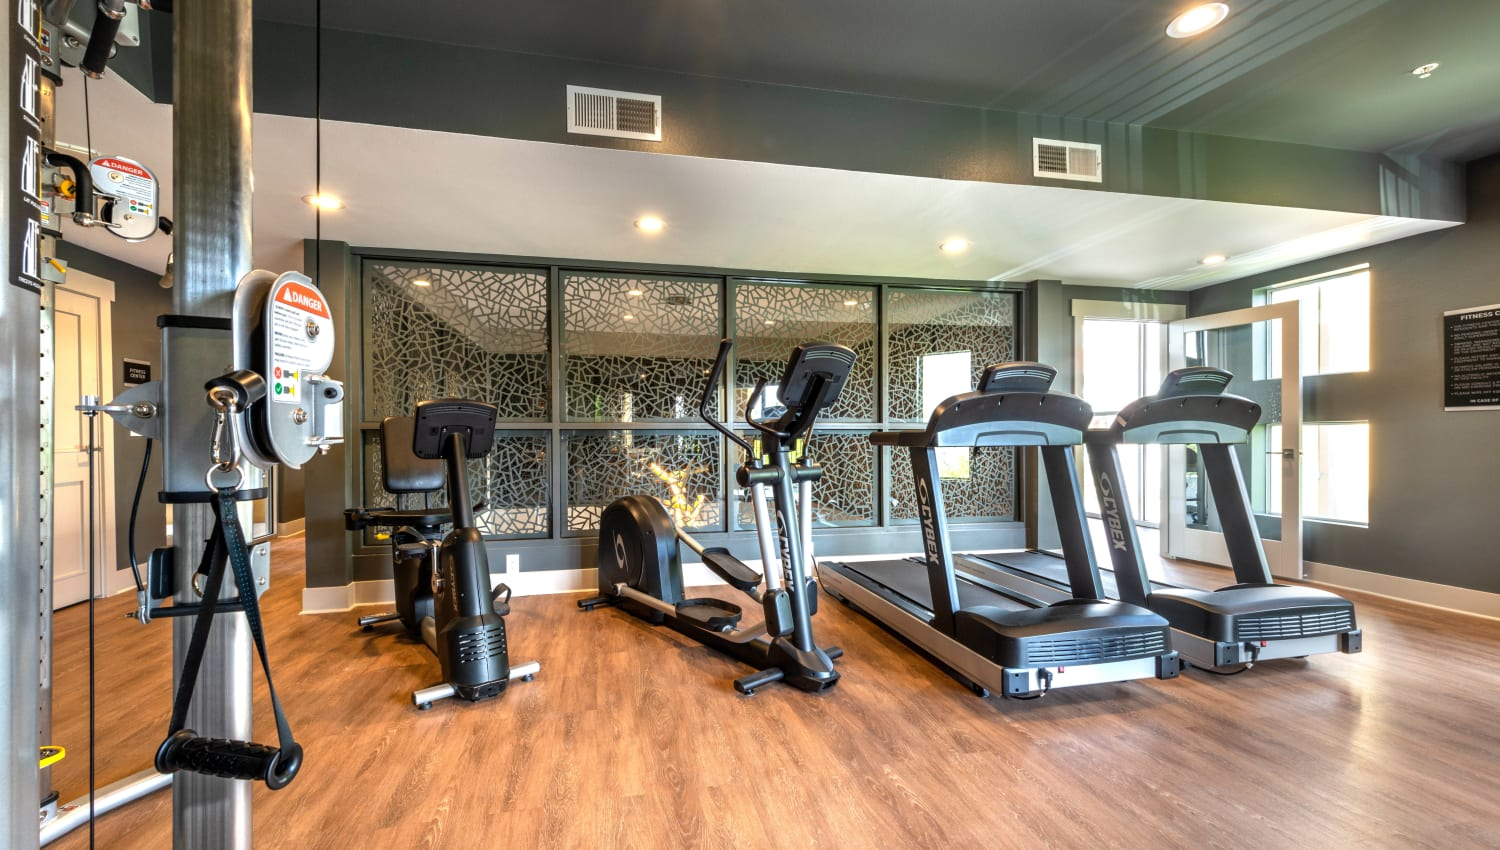 Large variety of cardio machines in the fitness center at Olympus Solaire in Albuquerque, New Mexico